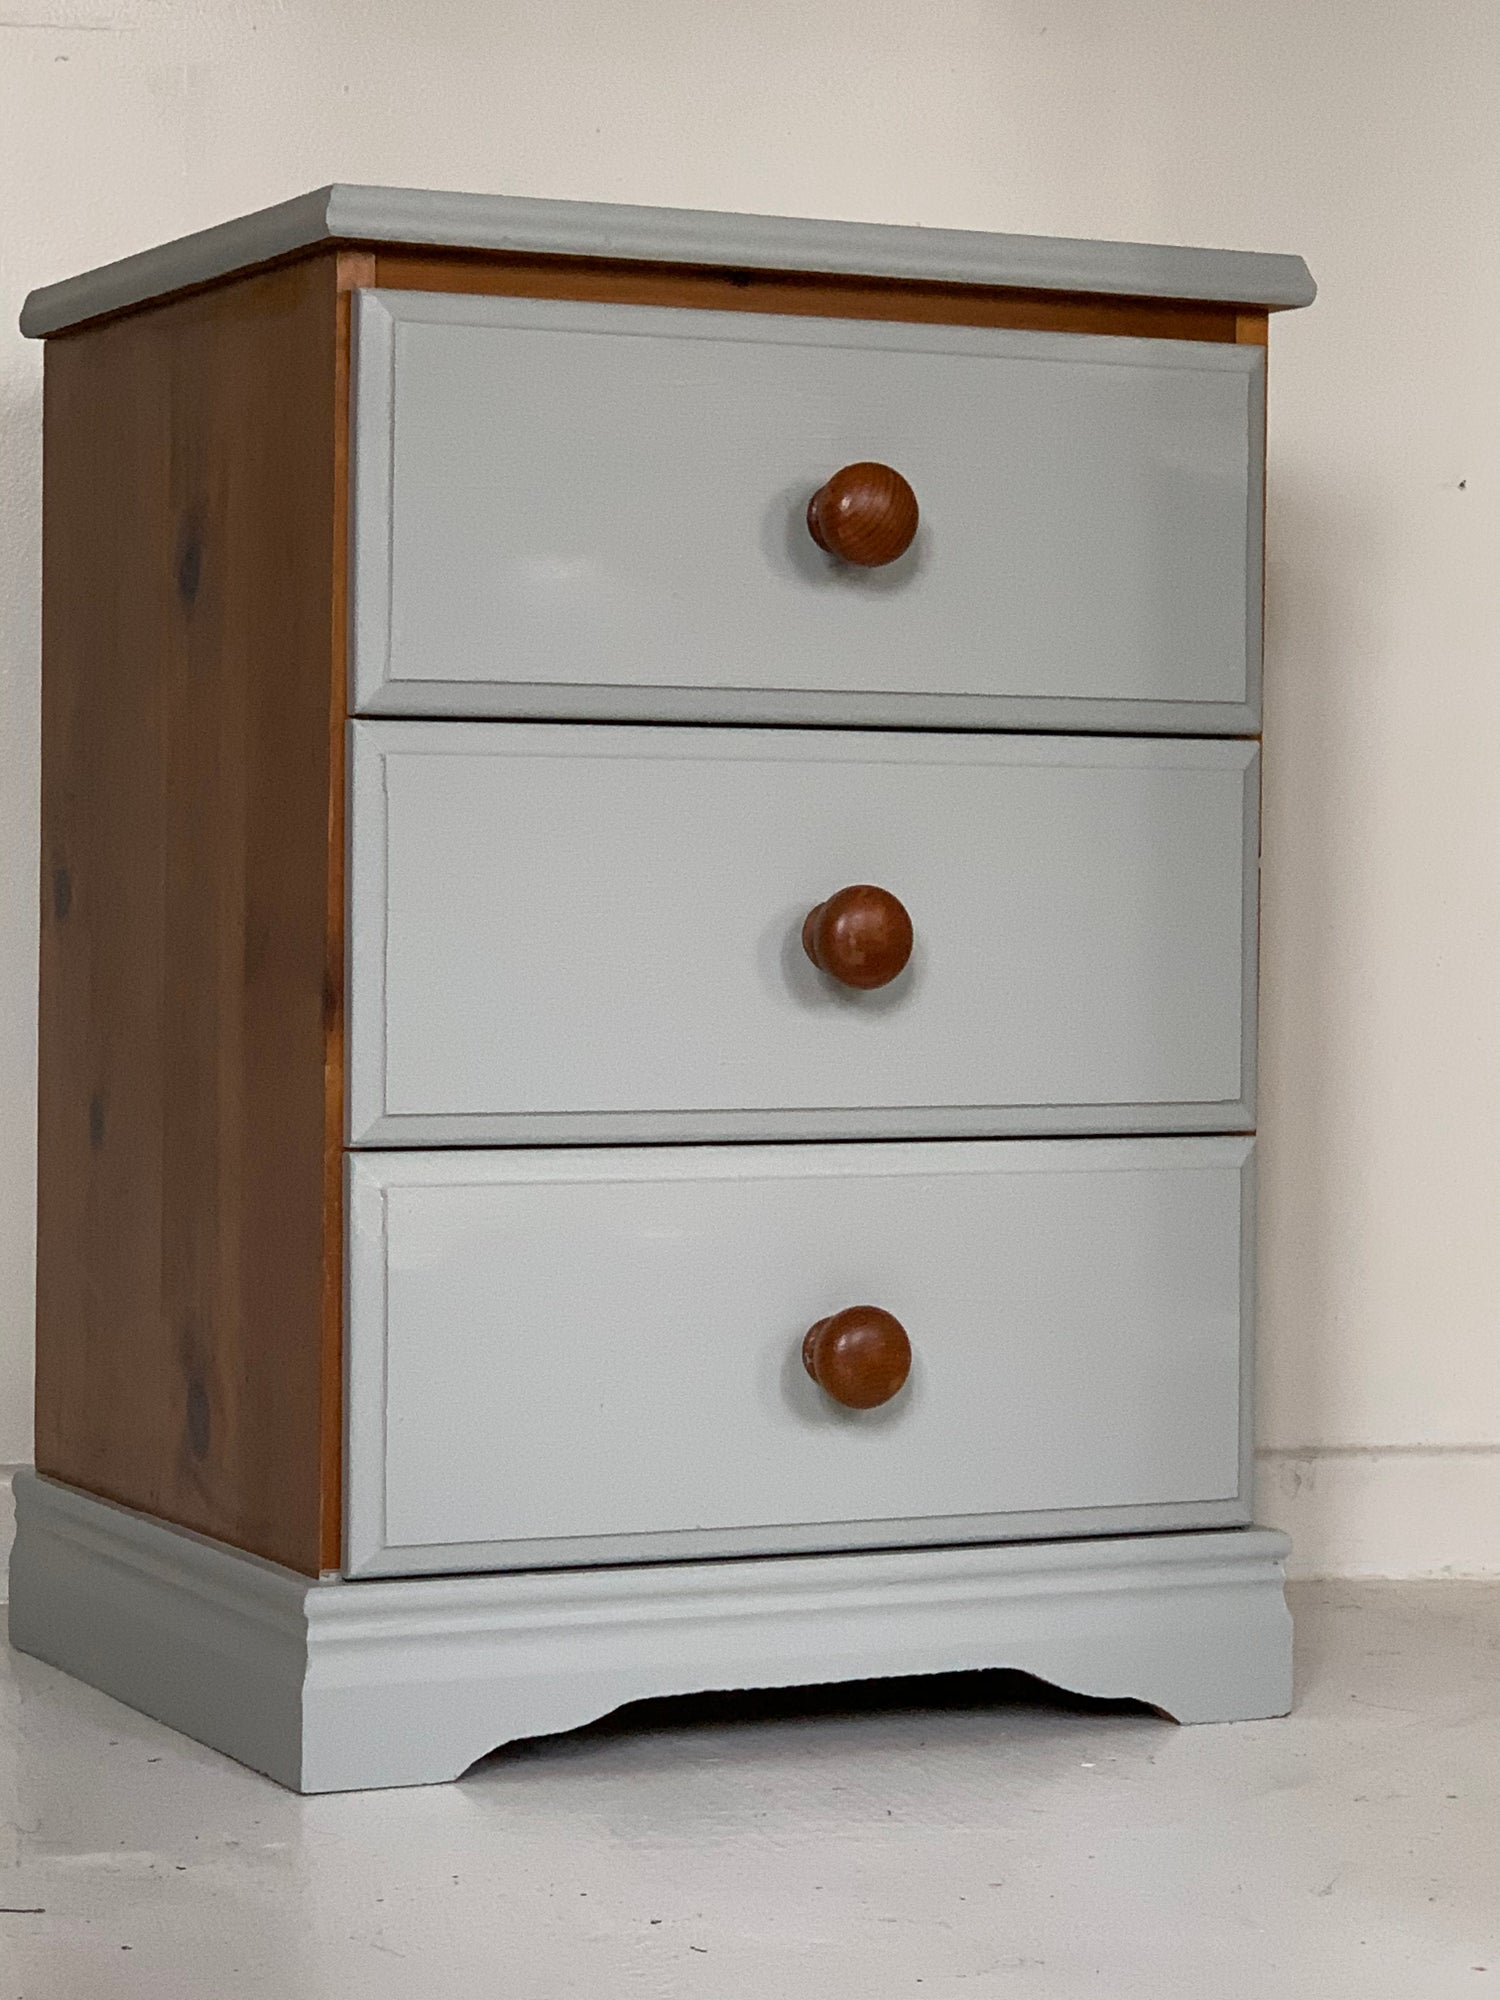 Image of Pine chest of 3 sturdy draws